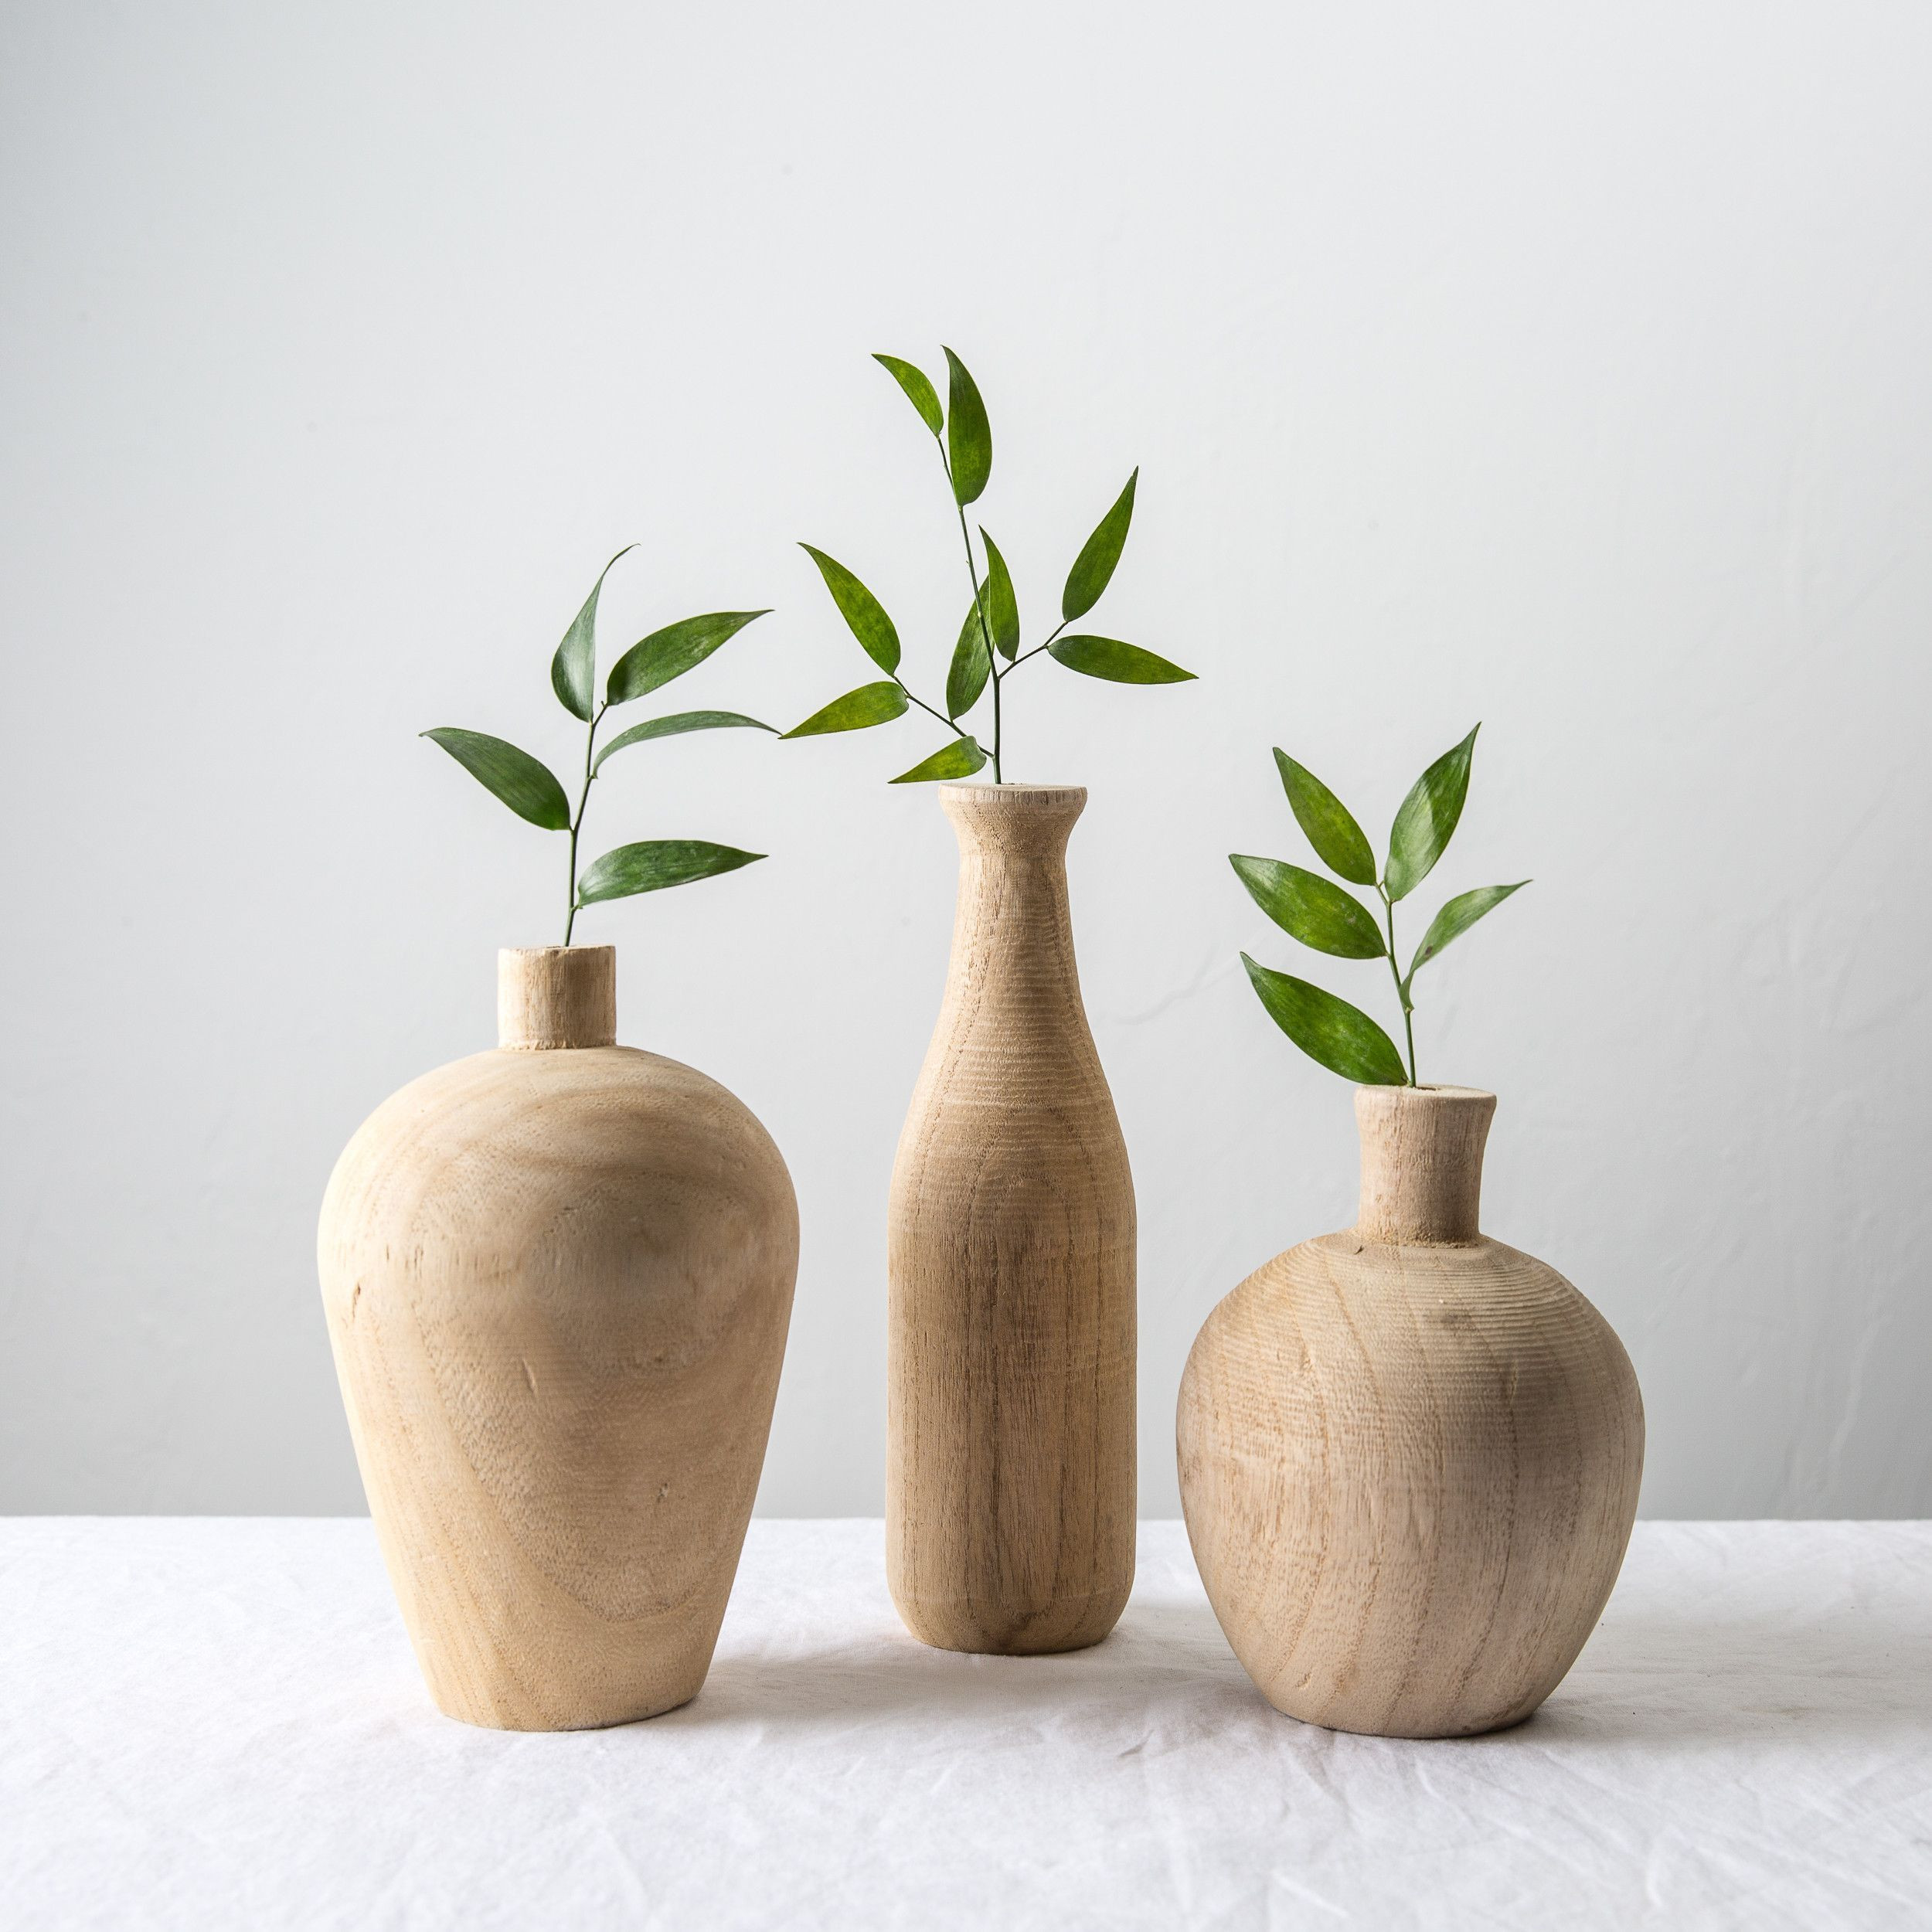 Large Wooden Vase Of 17 Unique Extra Large Vase Bogekompresorturkiye Com within the Paulownia Wood Vase is A Natural Wooden Vase that Es In Three Different Shapes